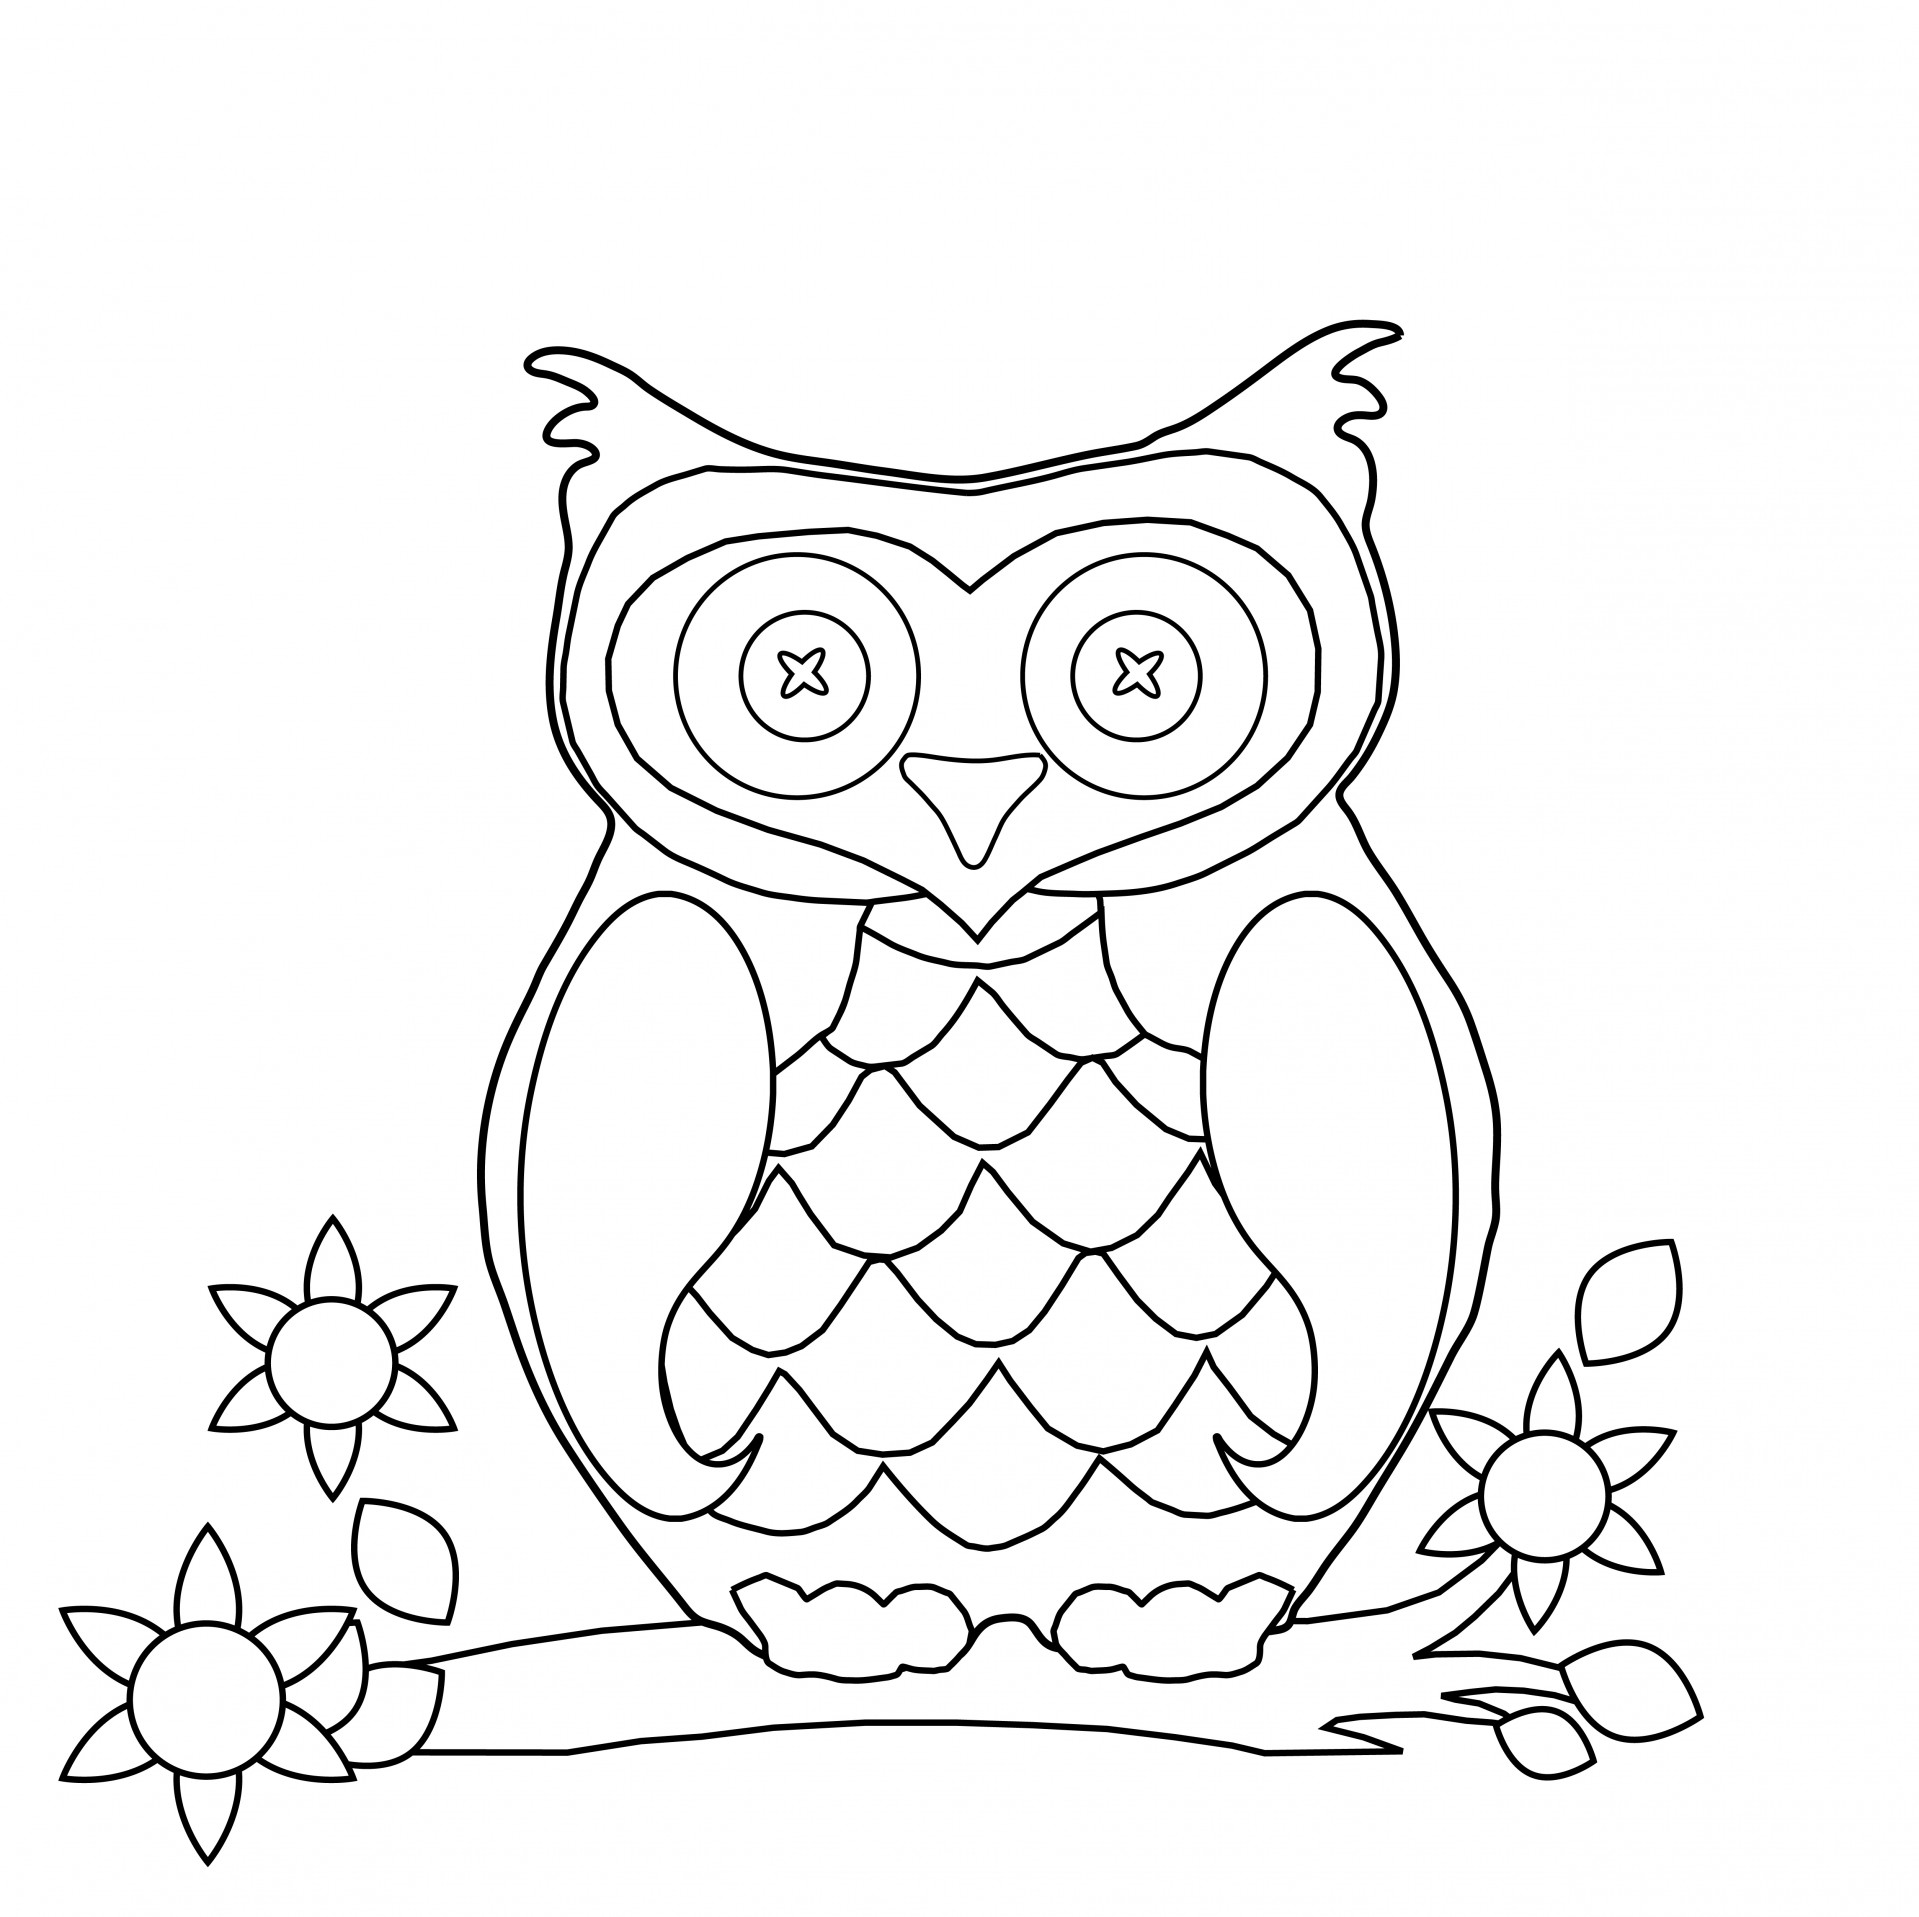 el coloring pages - photo#41